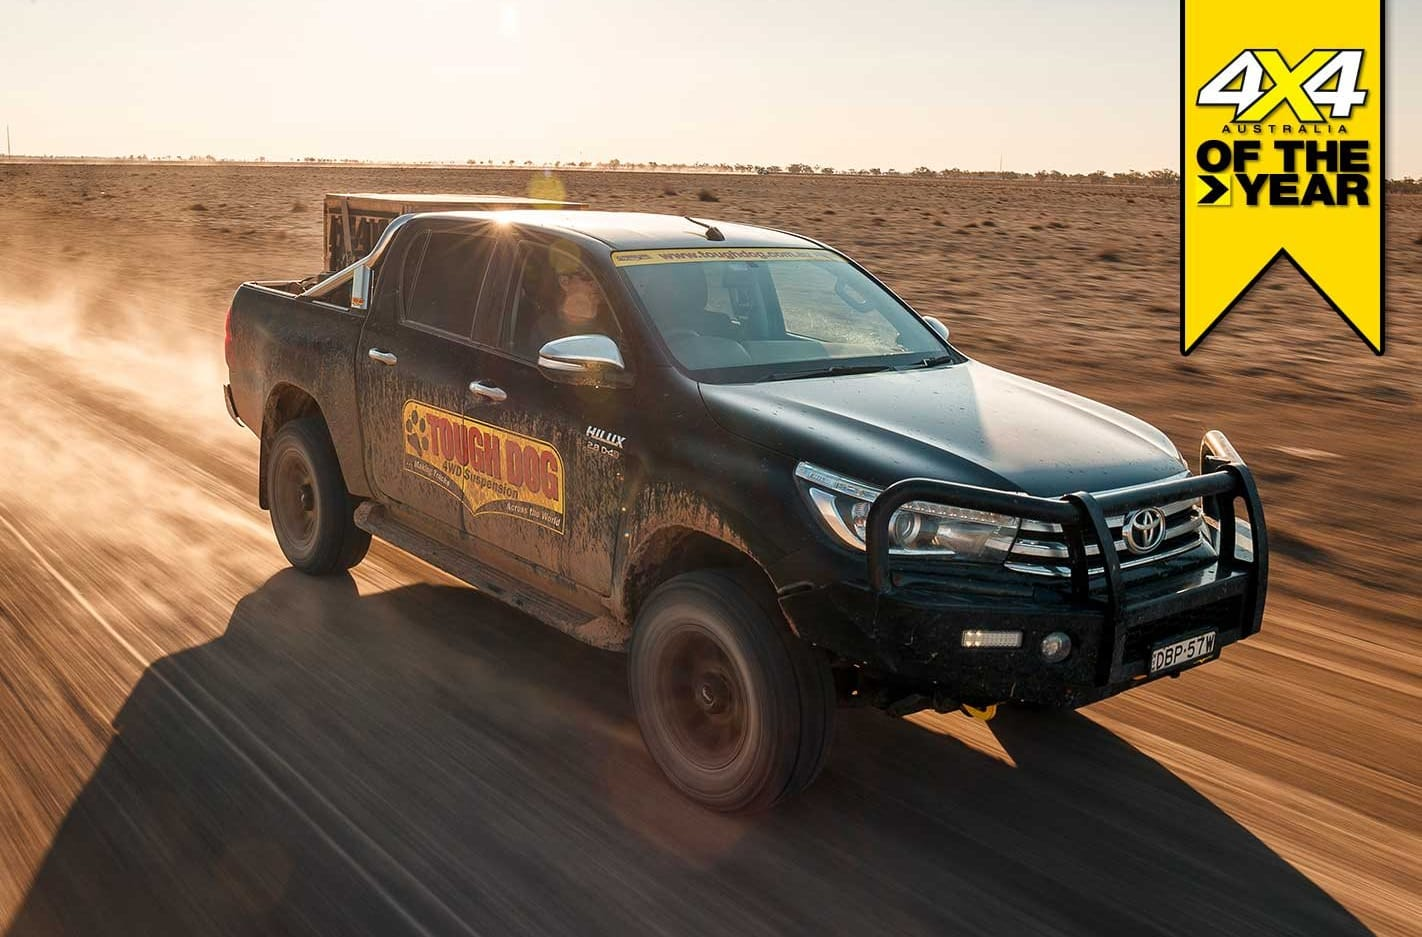 Tough Dog Toyota Hilux review 4x4 of the Year 2019